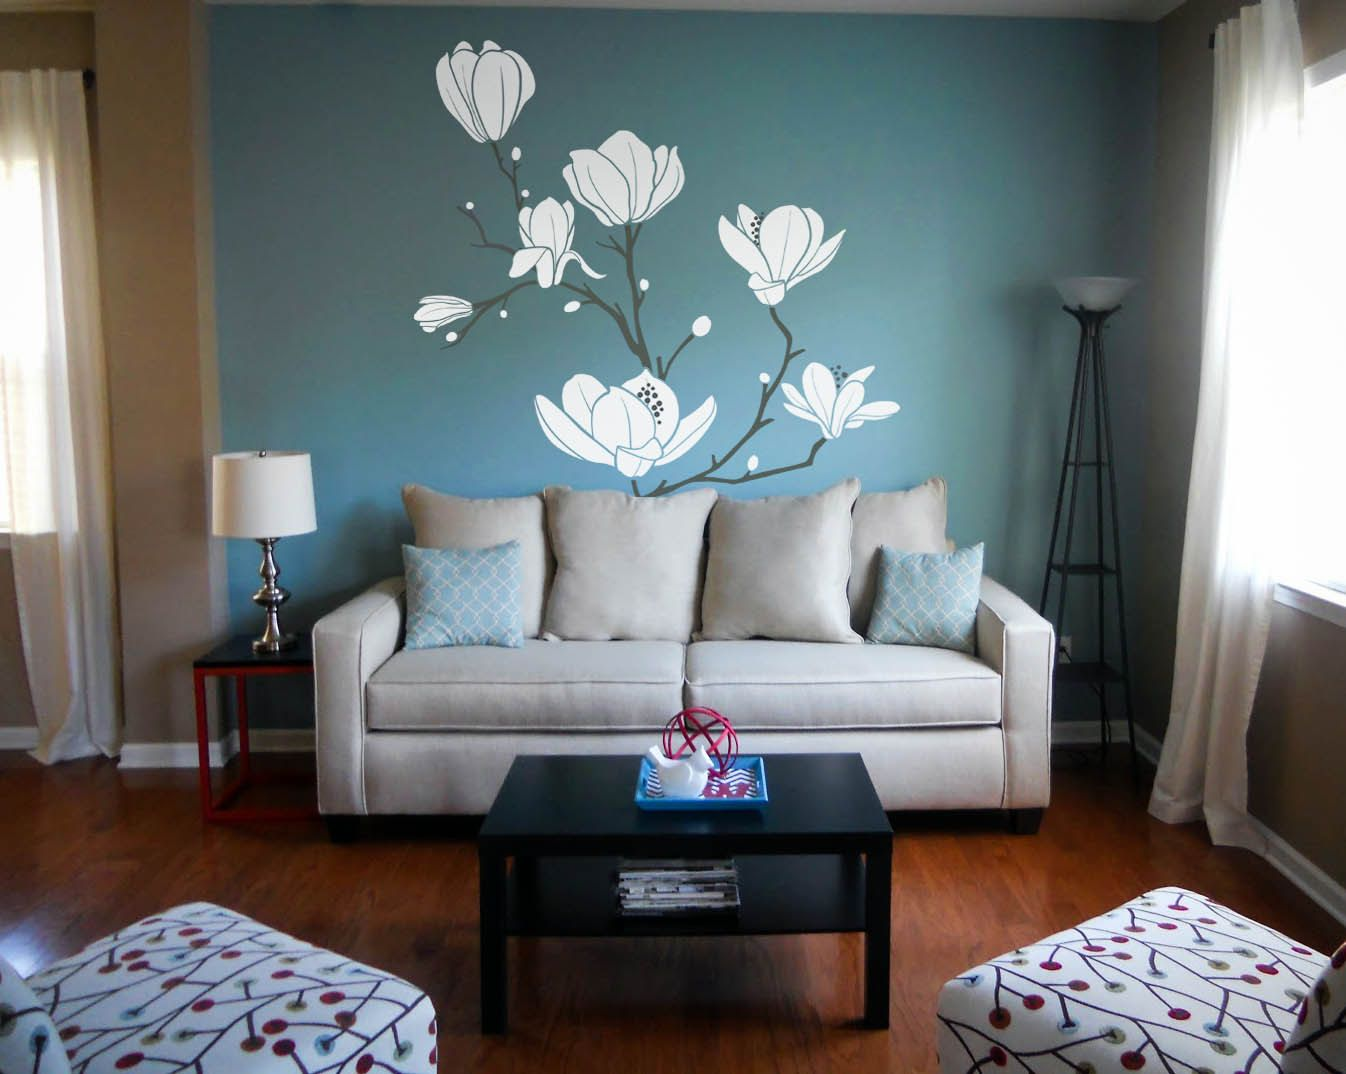 magnolia flower blossom decal large tree branch stickers on wall stickers design id=43452